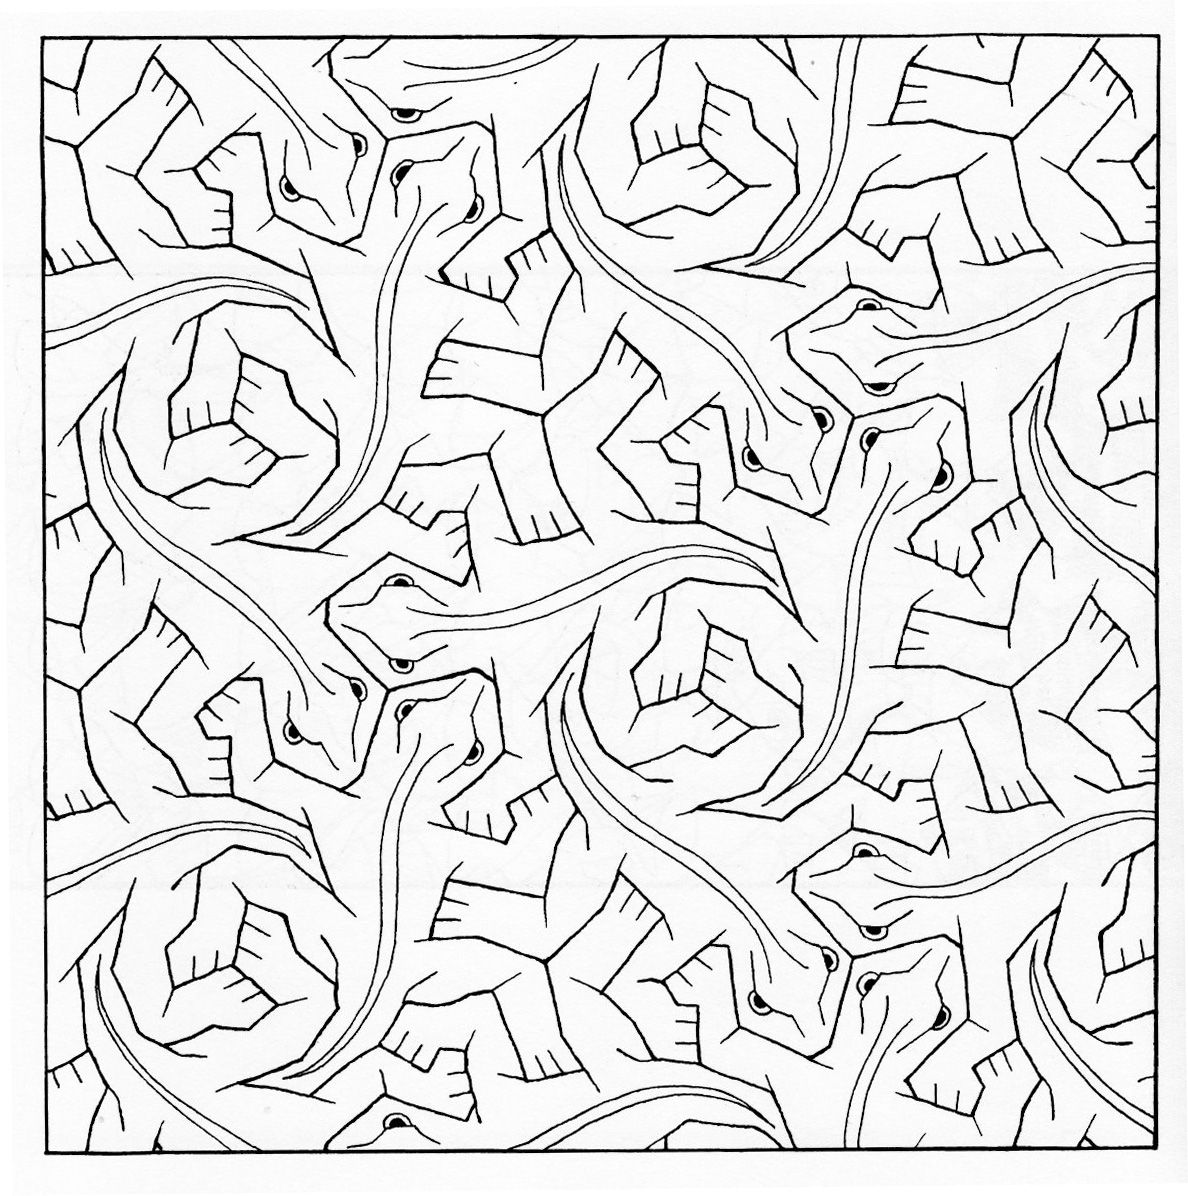 Adaptable image regarding tessellation worksheets printable